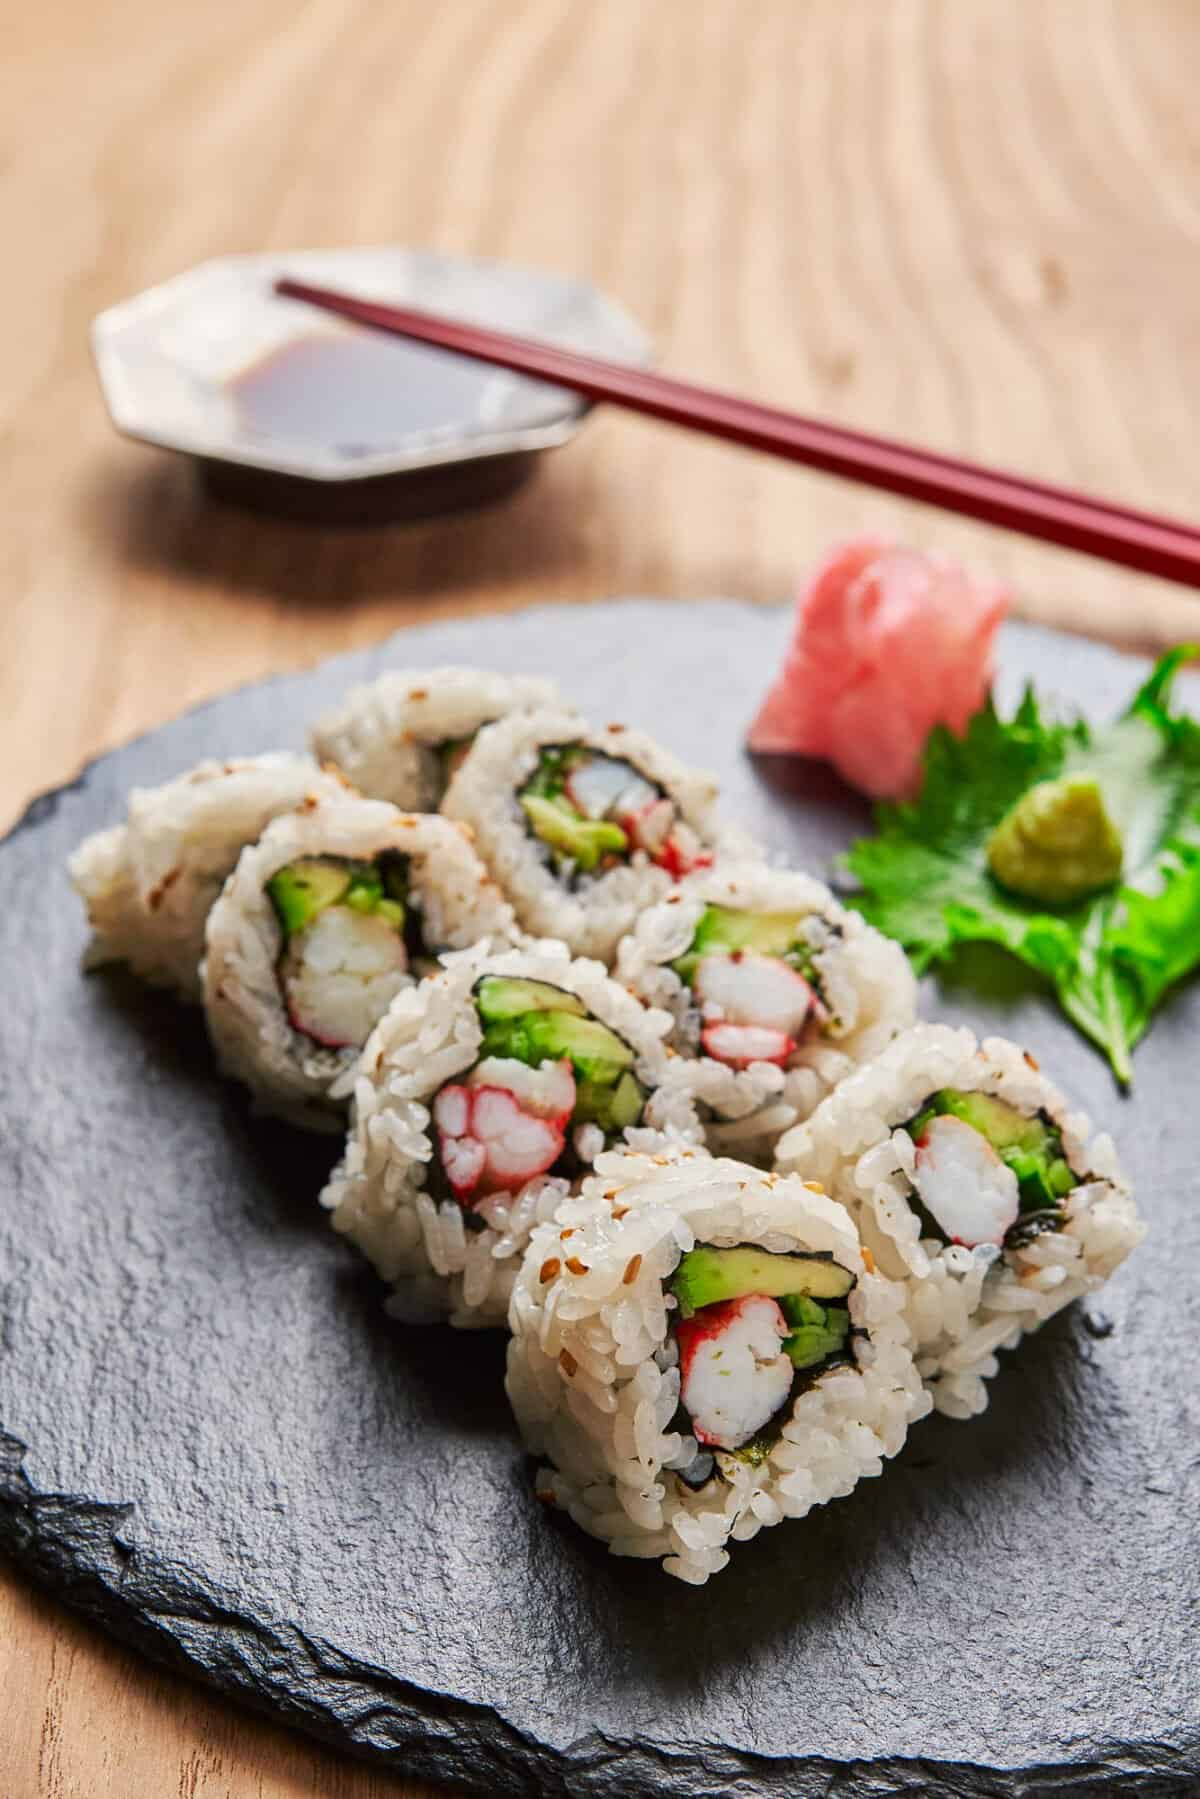 Here's how to make California Rolls at home like a pro. All the techniques you need to make the rice and roll the roll.